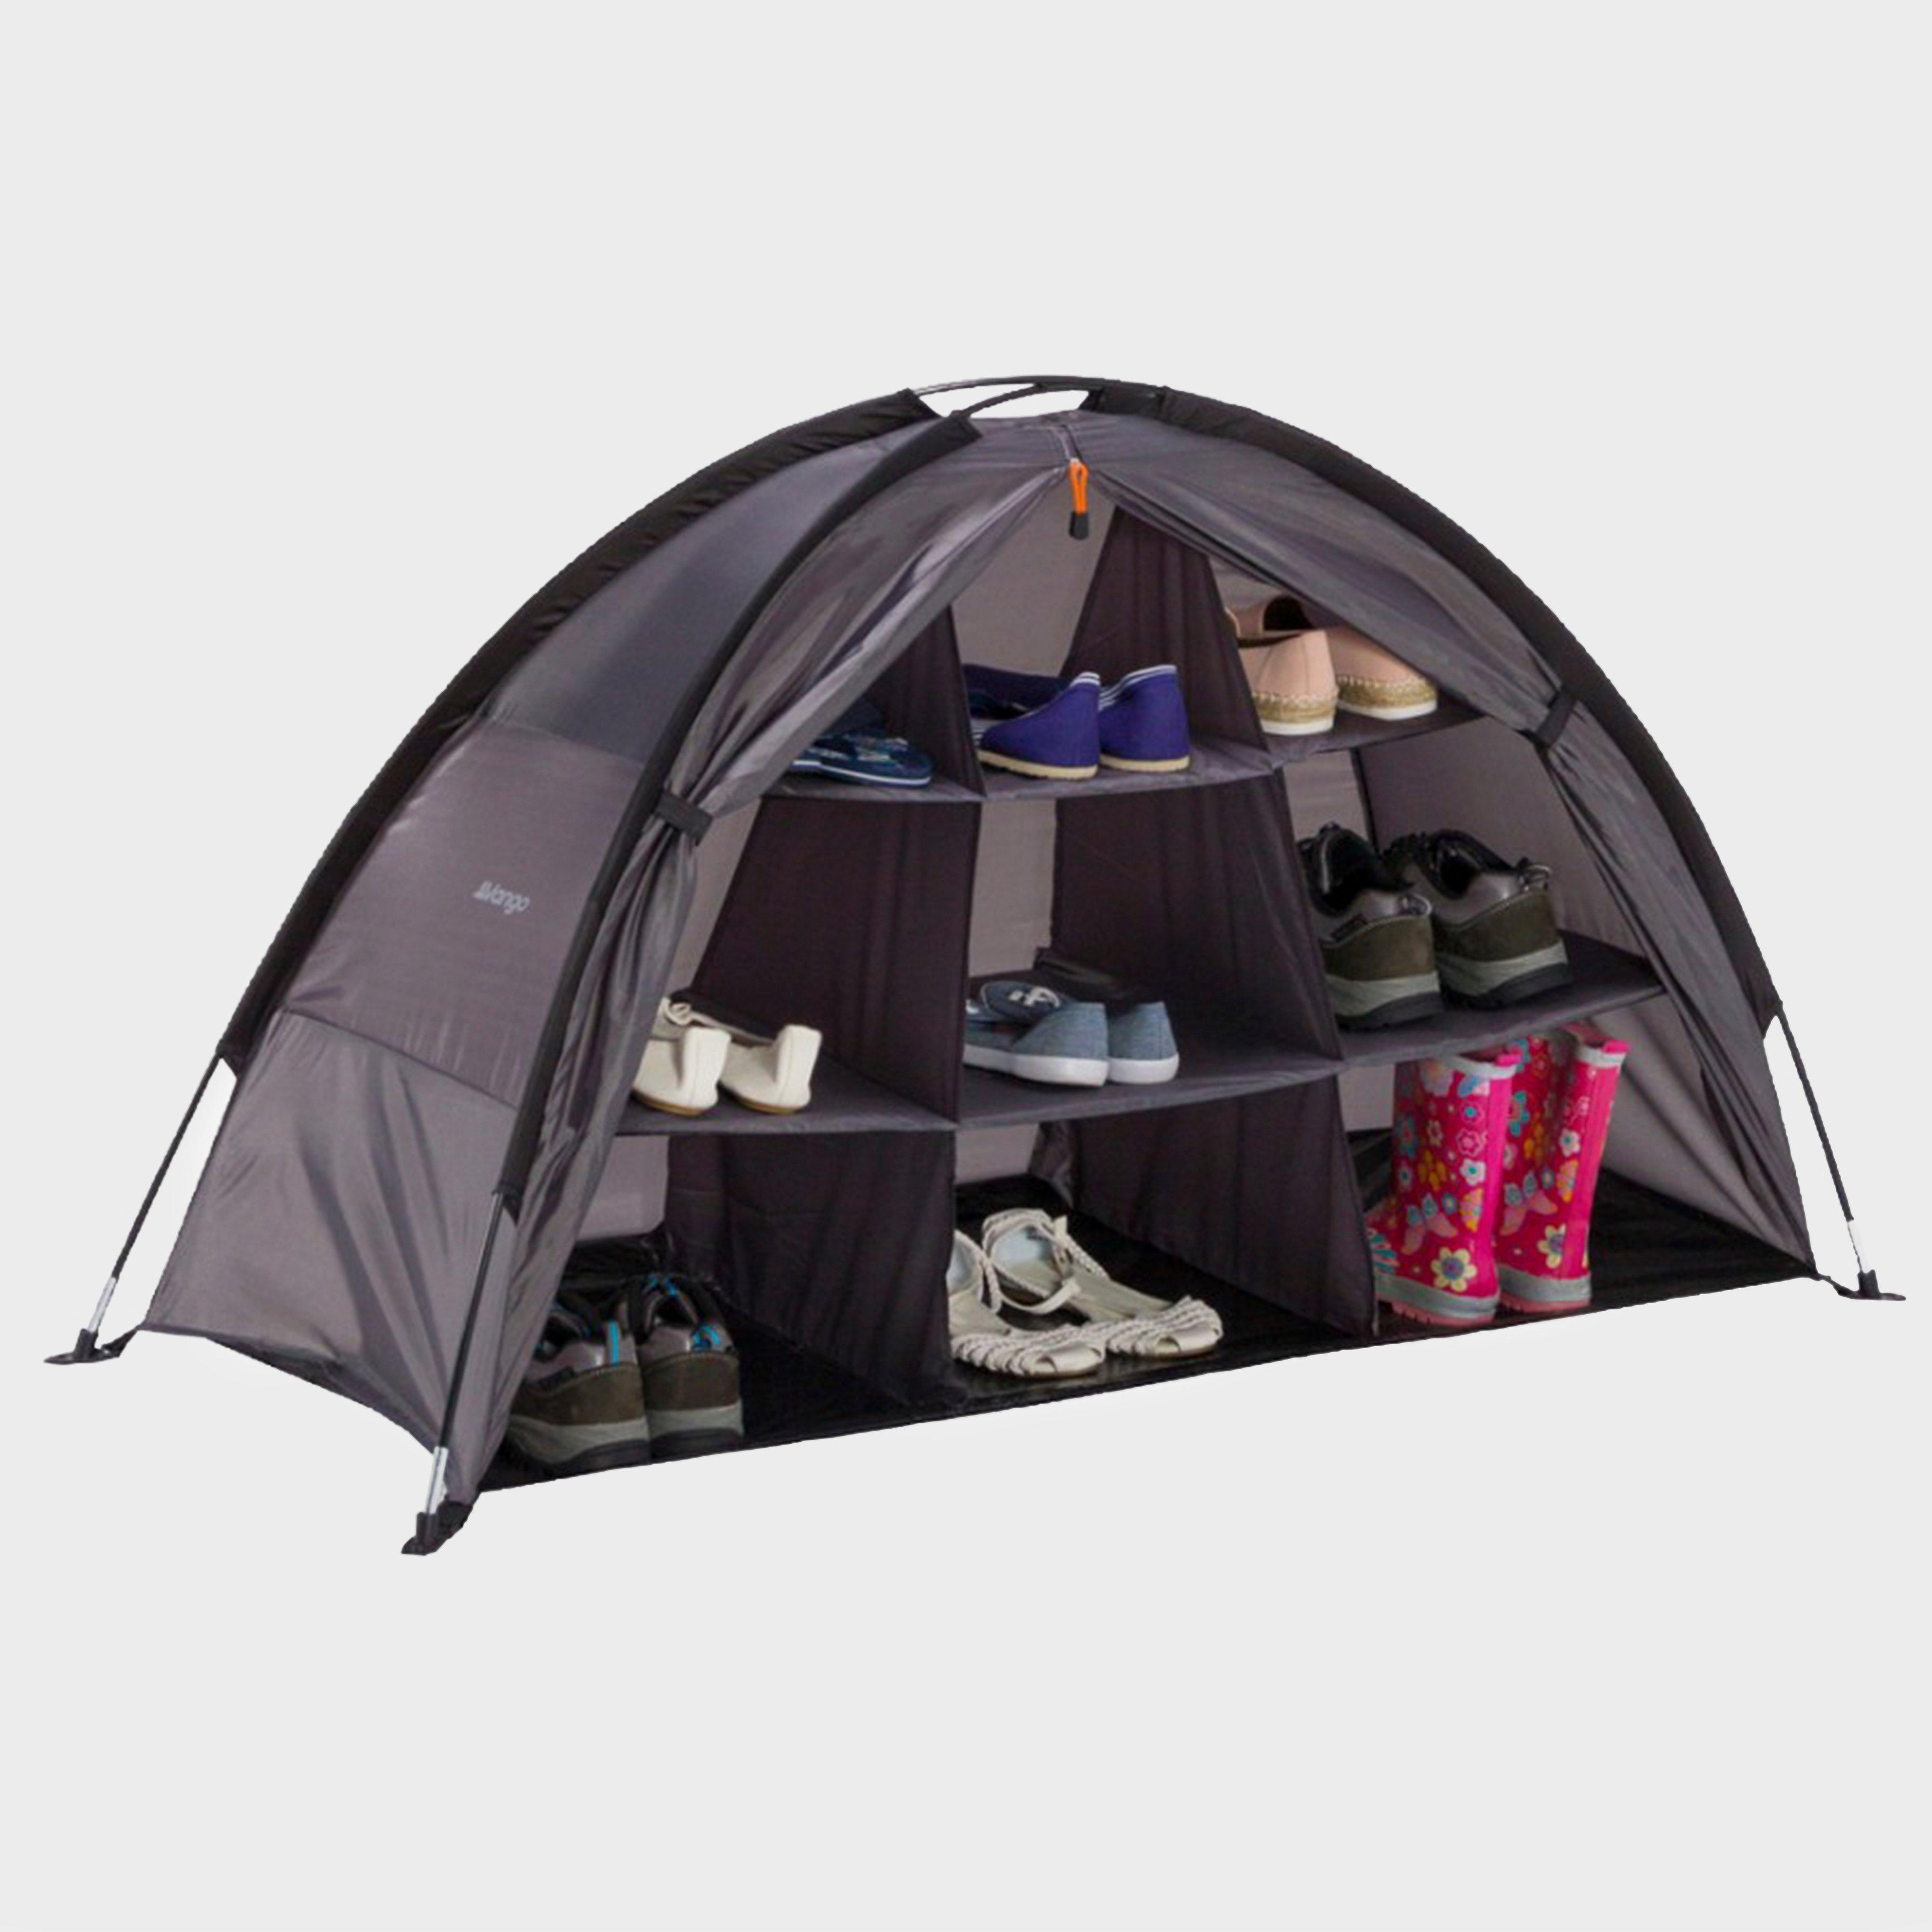 Cinch Makes A Range Of Durable Pop Up Tents Including Four Man & How To Take Down A Vango Pop Up Tent - Best Tent 2018